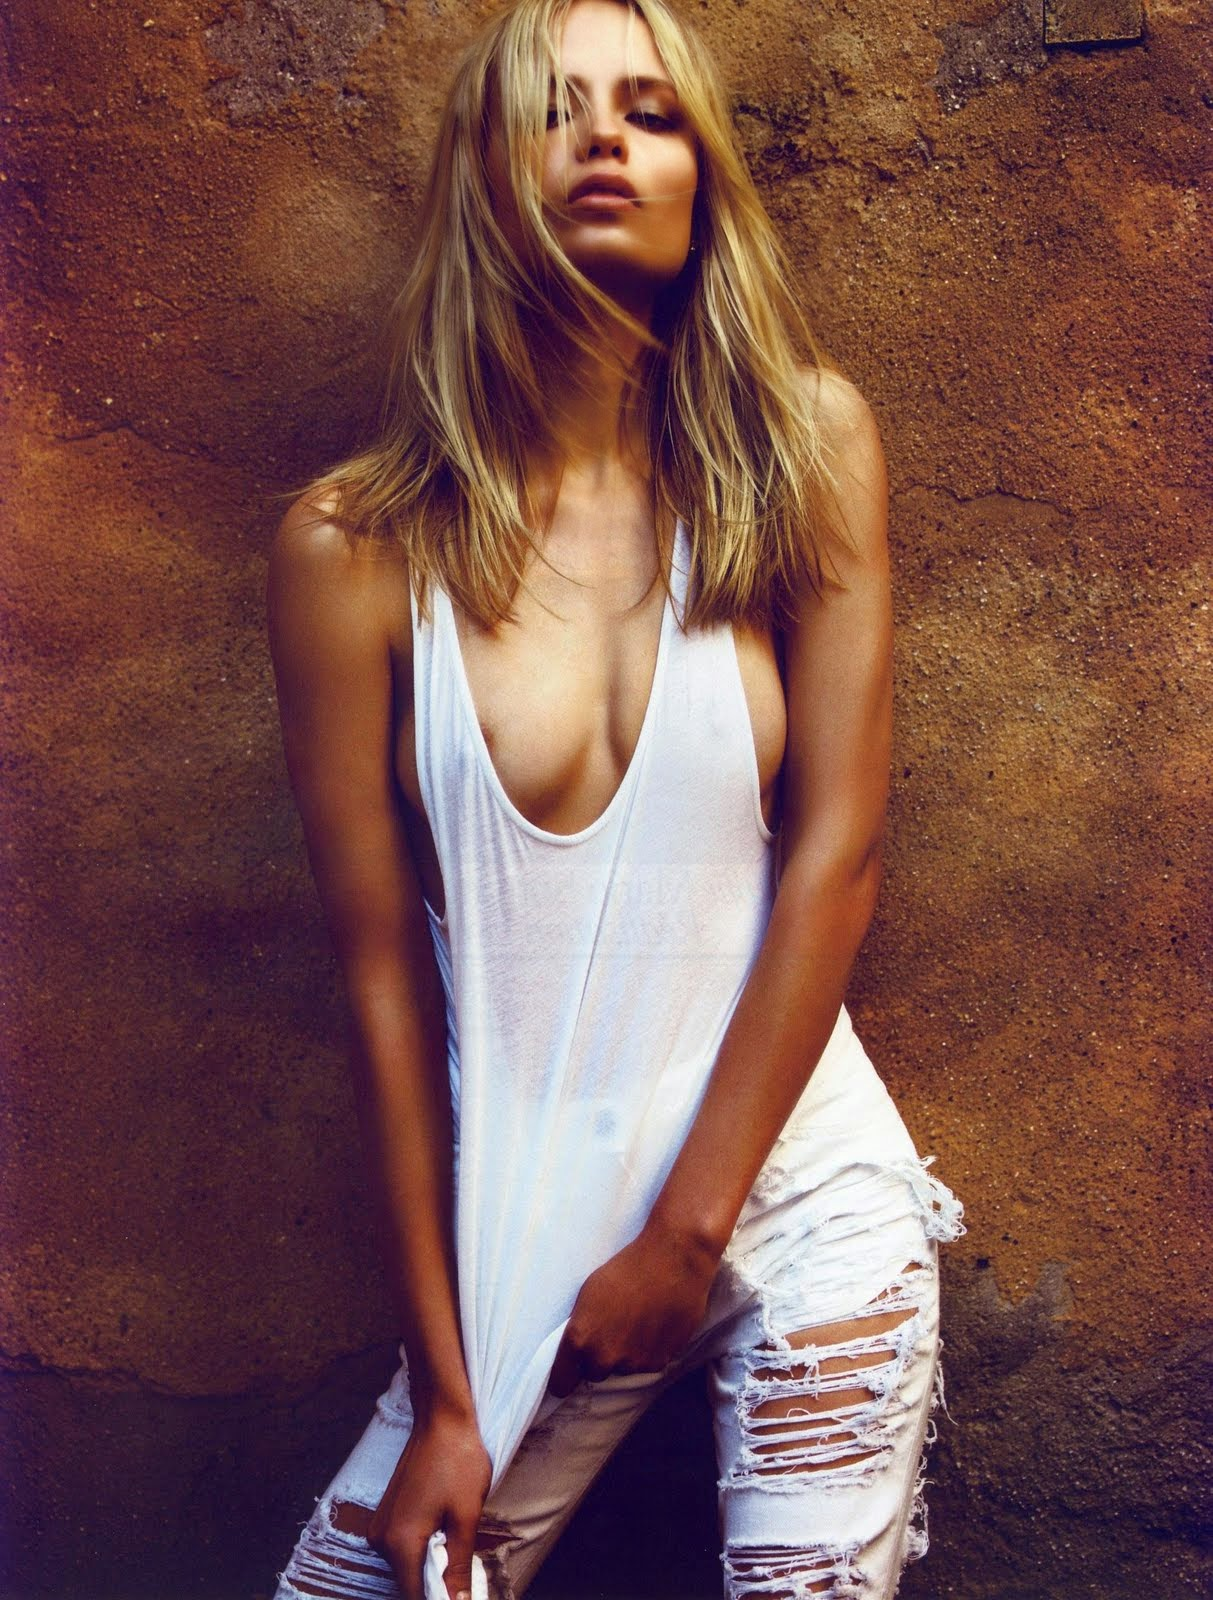 Natasha Poly Madame Figaro Hot Photo Shared By Lotty-44 | Fans ...